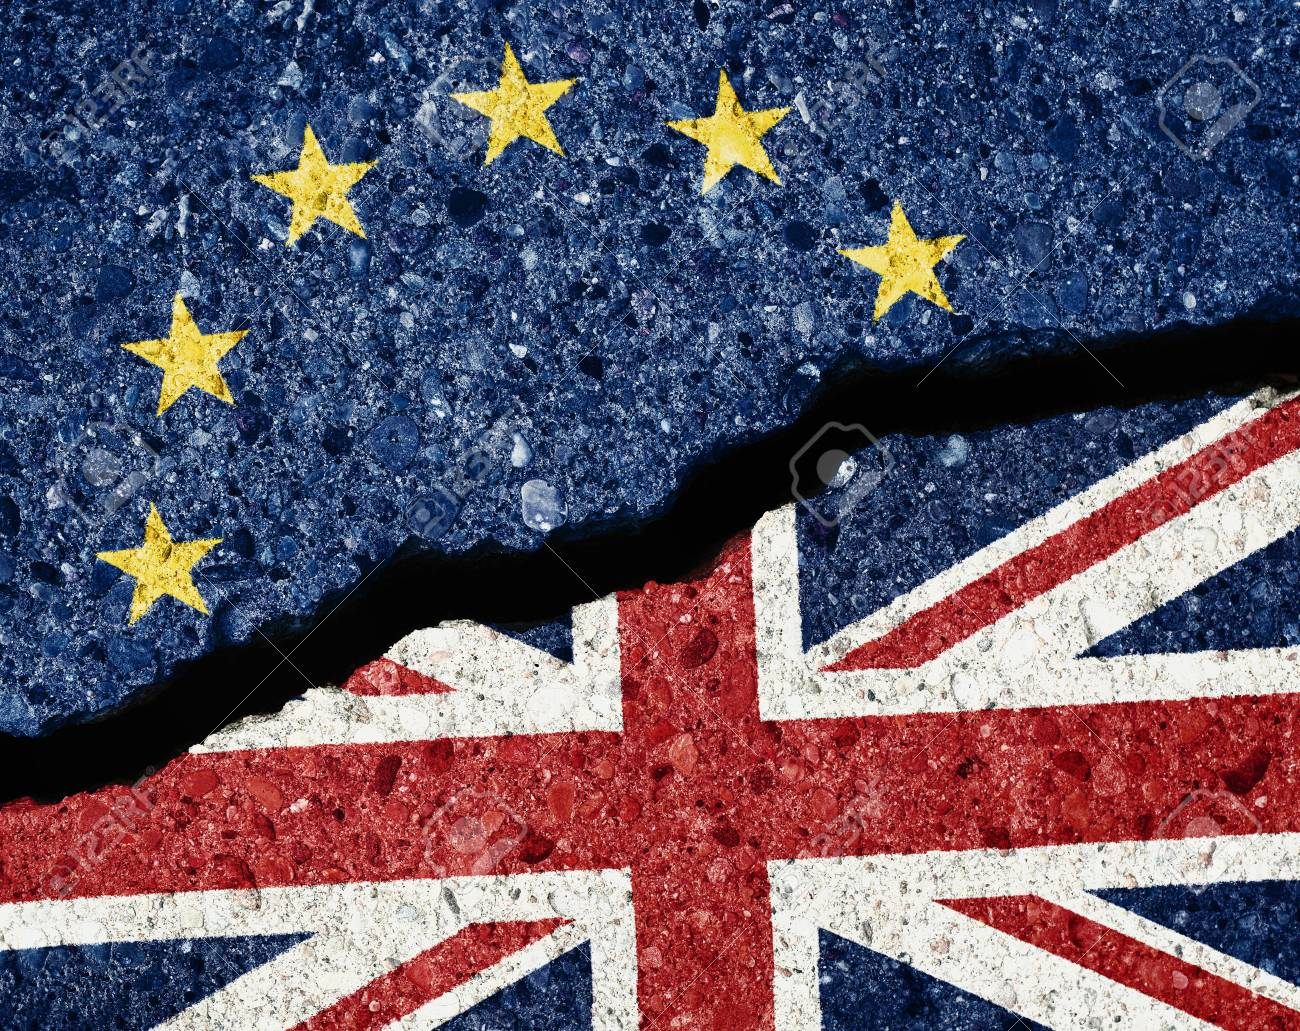 Brexit concept, crack in the asphalt dividing ue and gb flags - 84721664